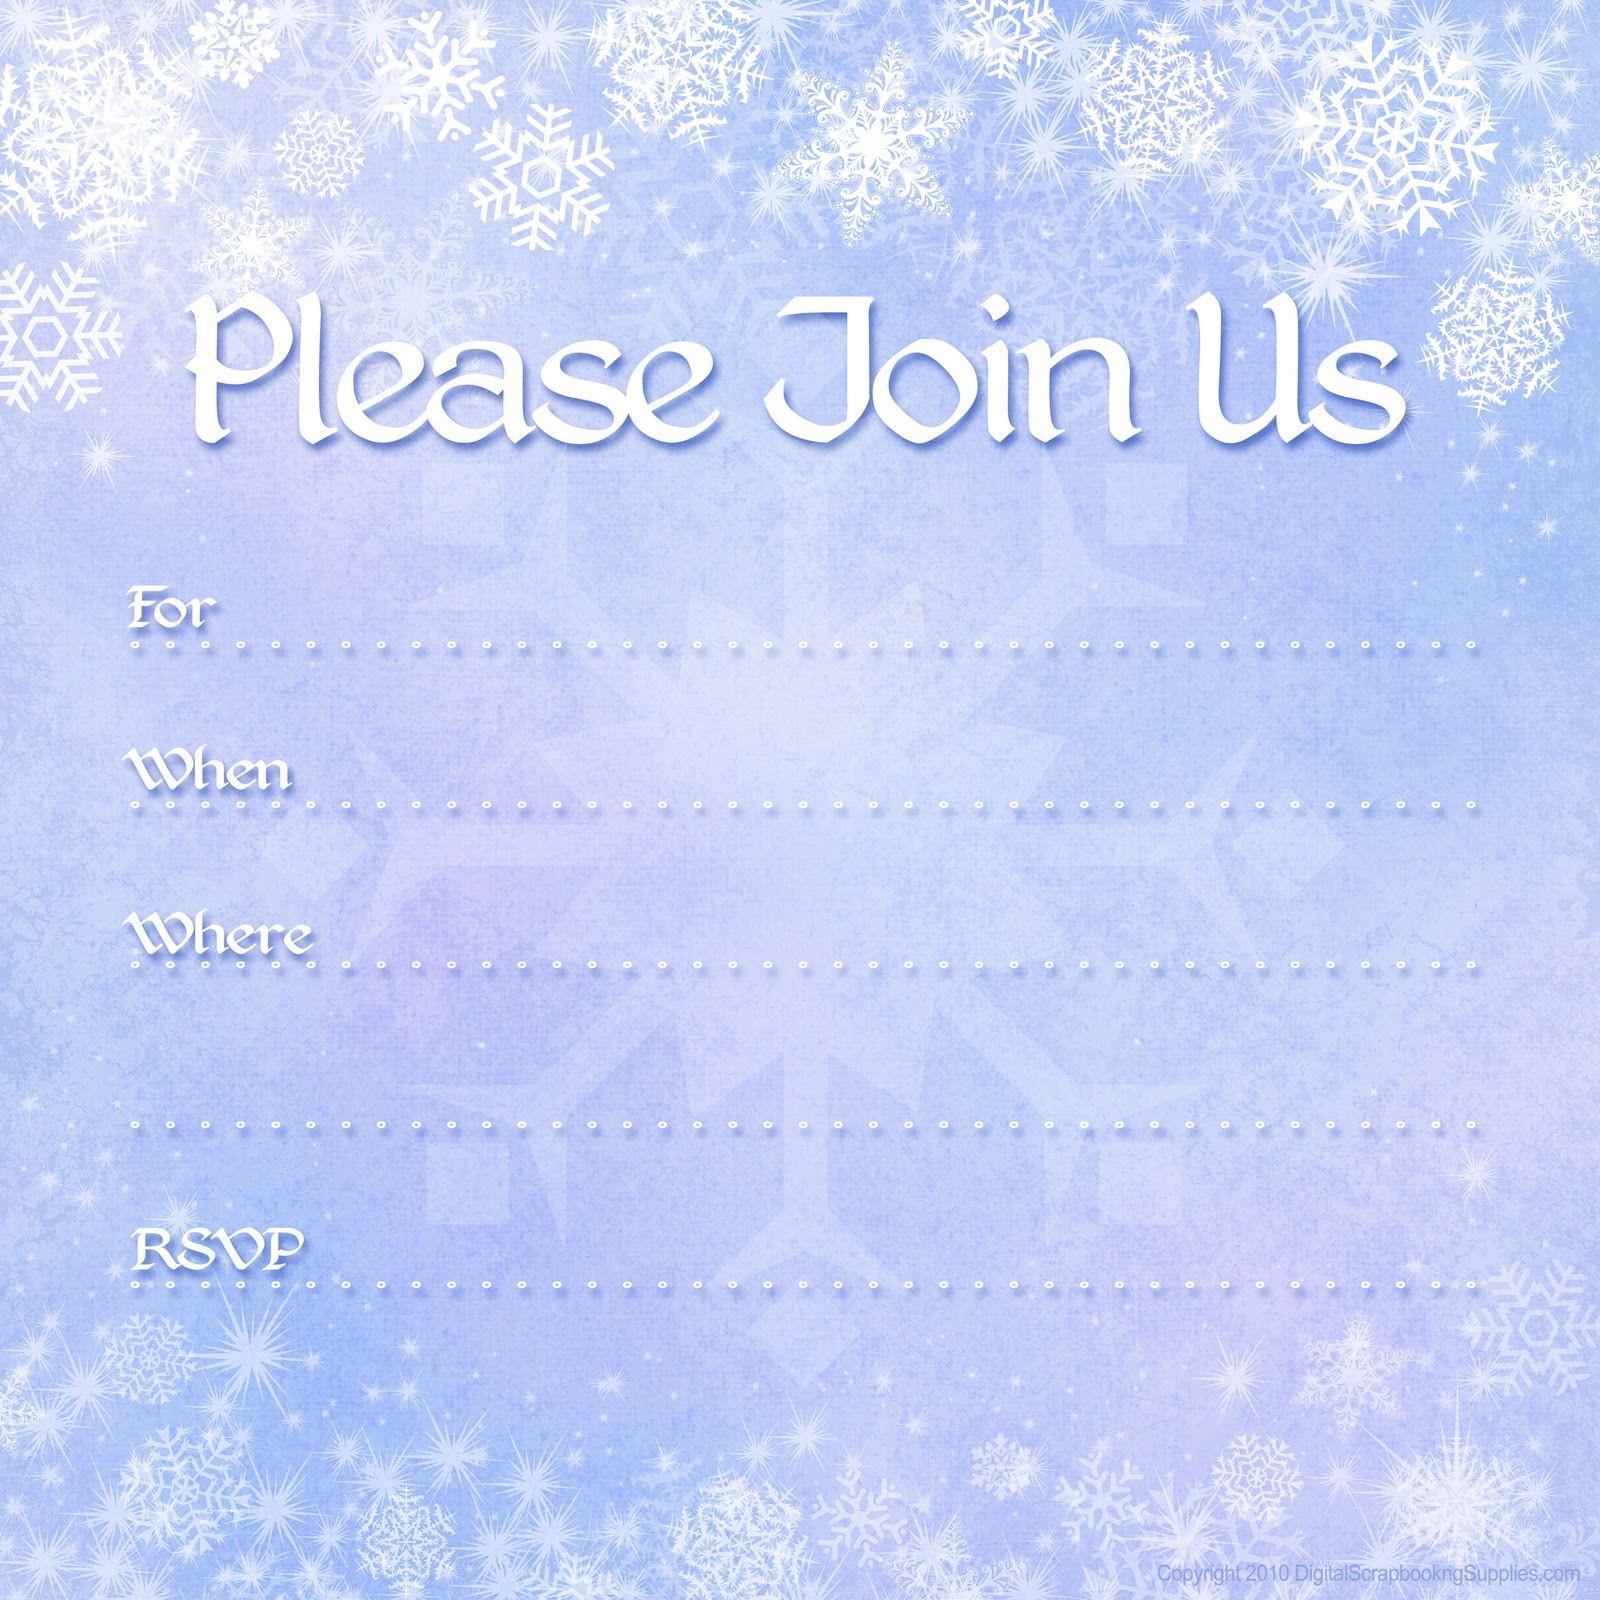 free printable invites | Free Printable Party Invitations: Free ...